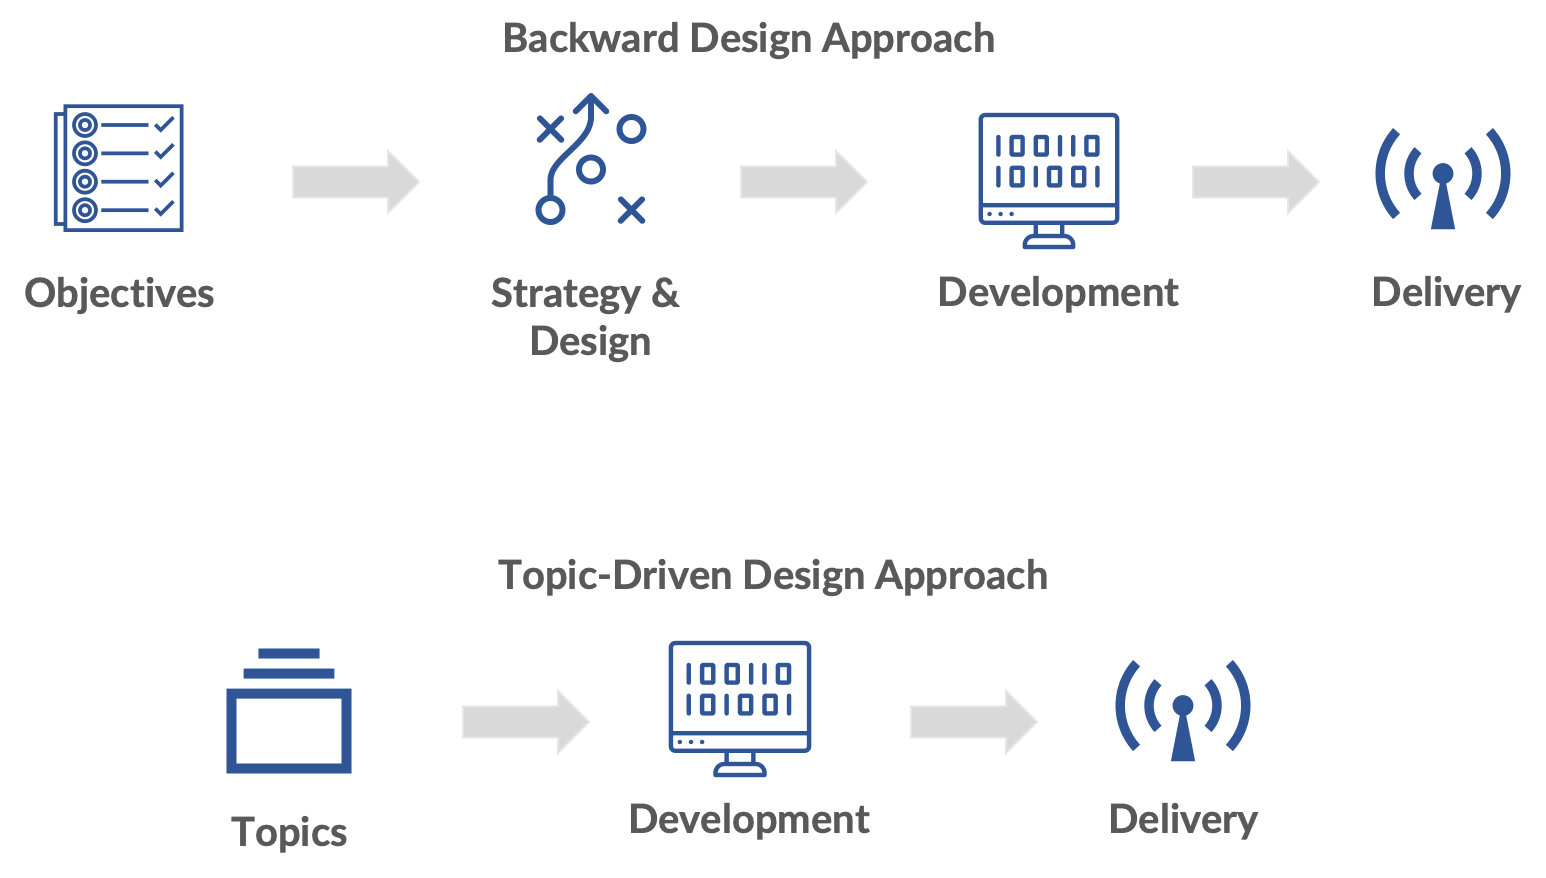 A diagram showing the difference between backward design approach and topic-driven design approach.